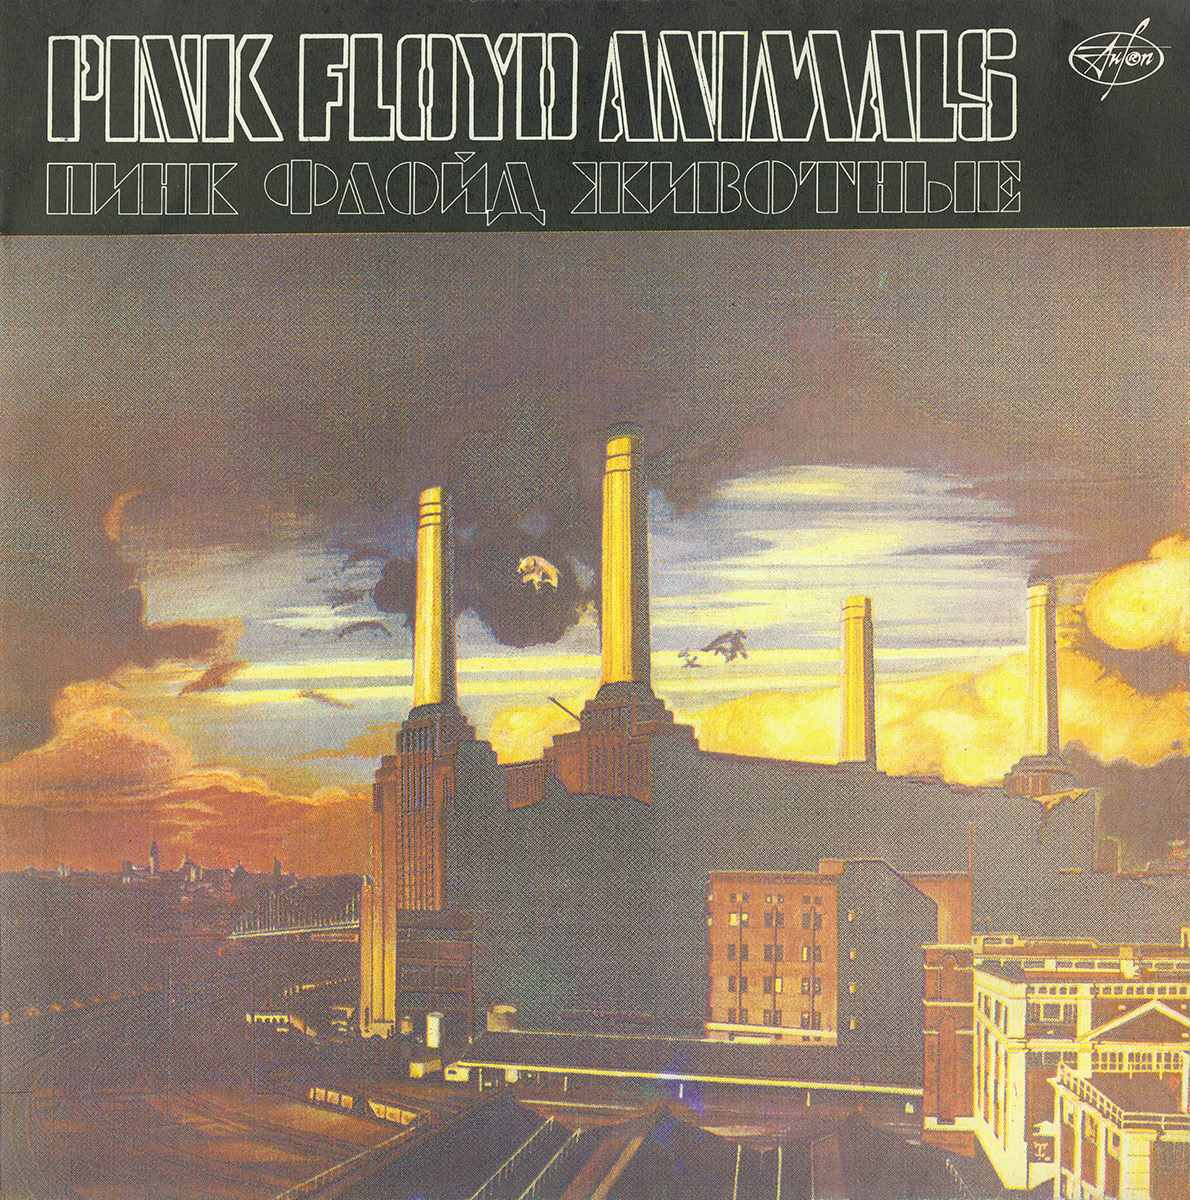 Pink Floyd Archives-Russia/Soviet Union Discography